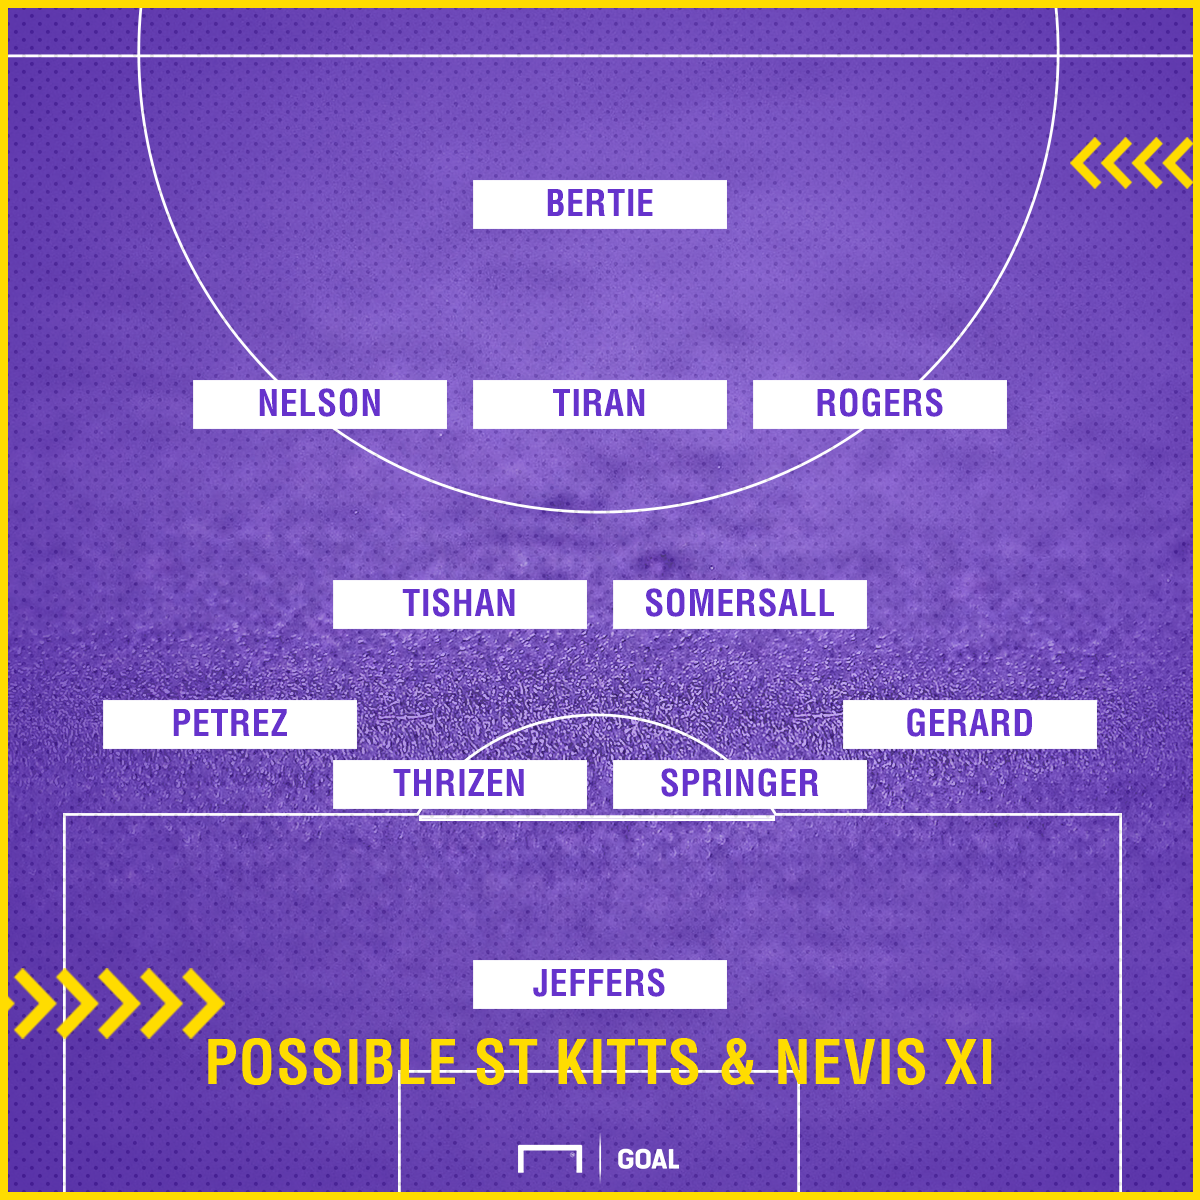 St. Kitts & Nevis XI Possible India